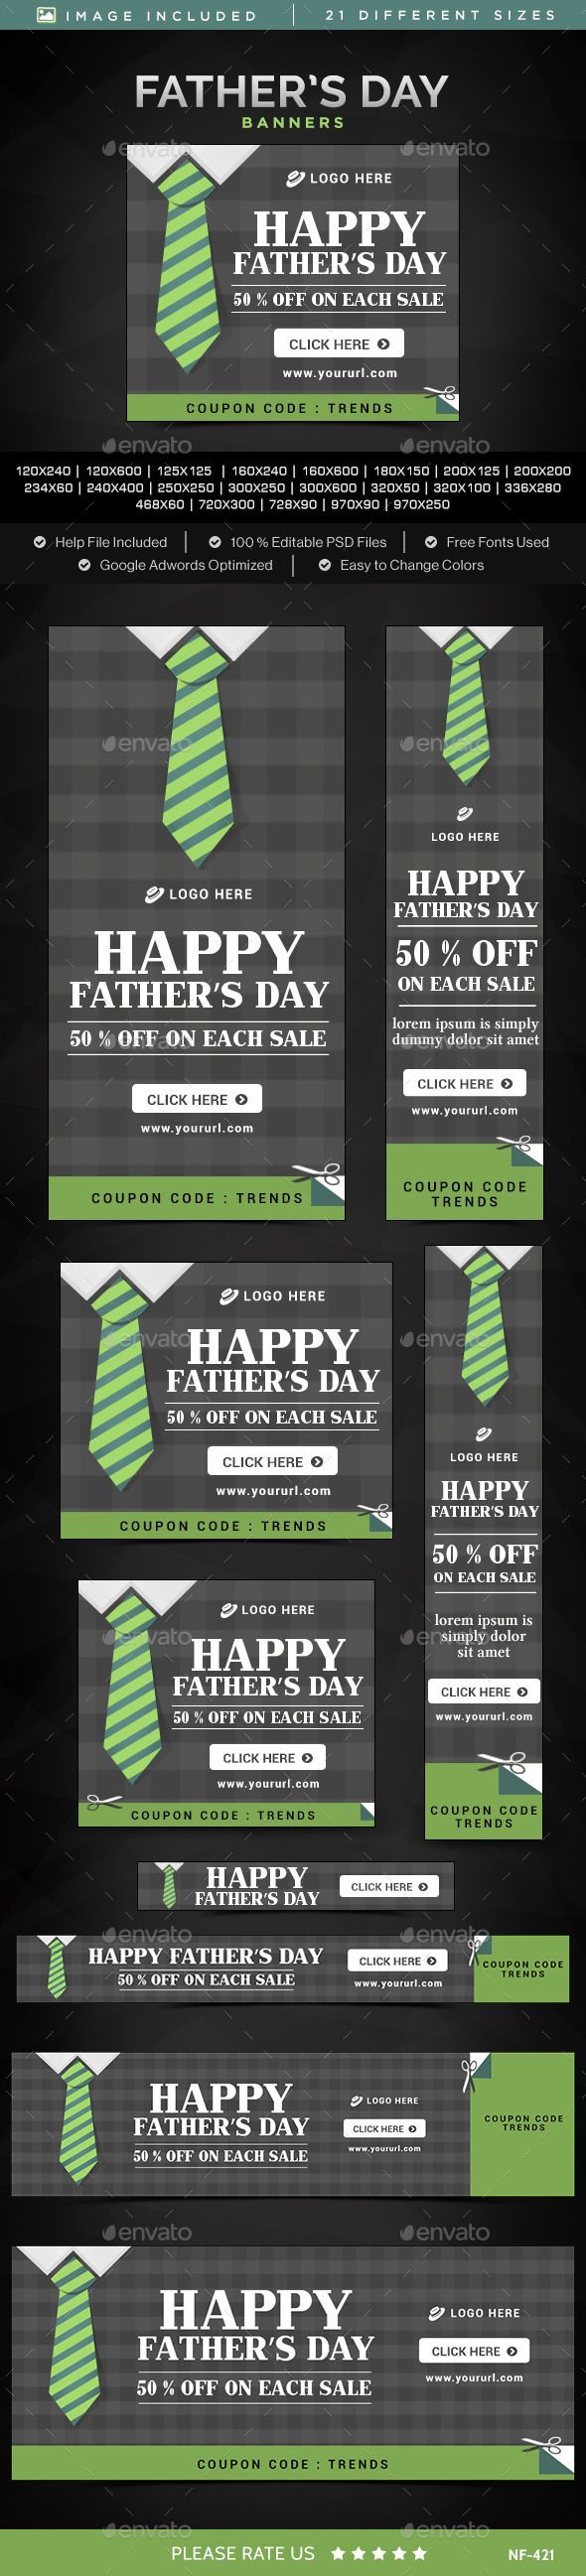 Father's Day Sale Banners Template #design Download: http://graphicriver.net/item/fathers-day-sale-banners/11742264?ref=ksioks